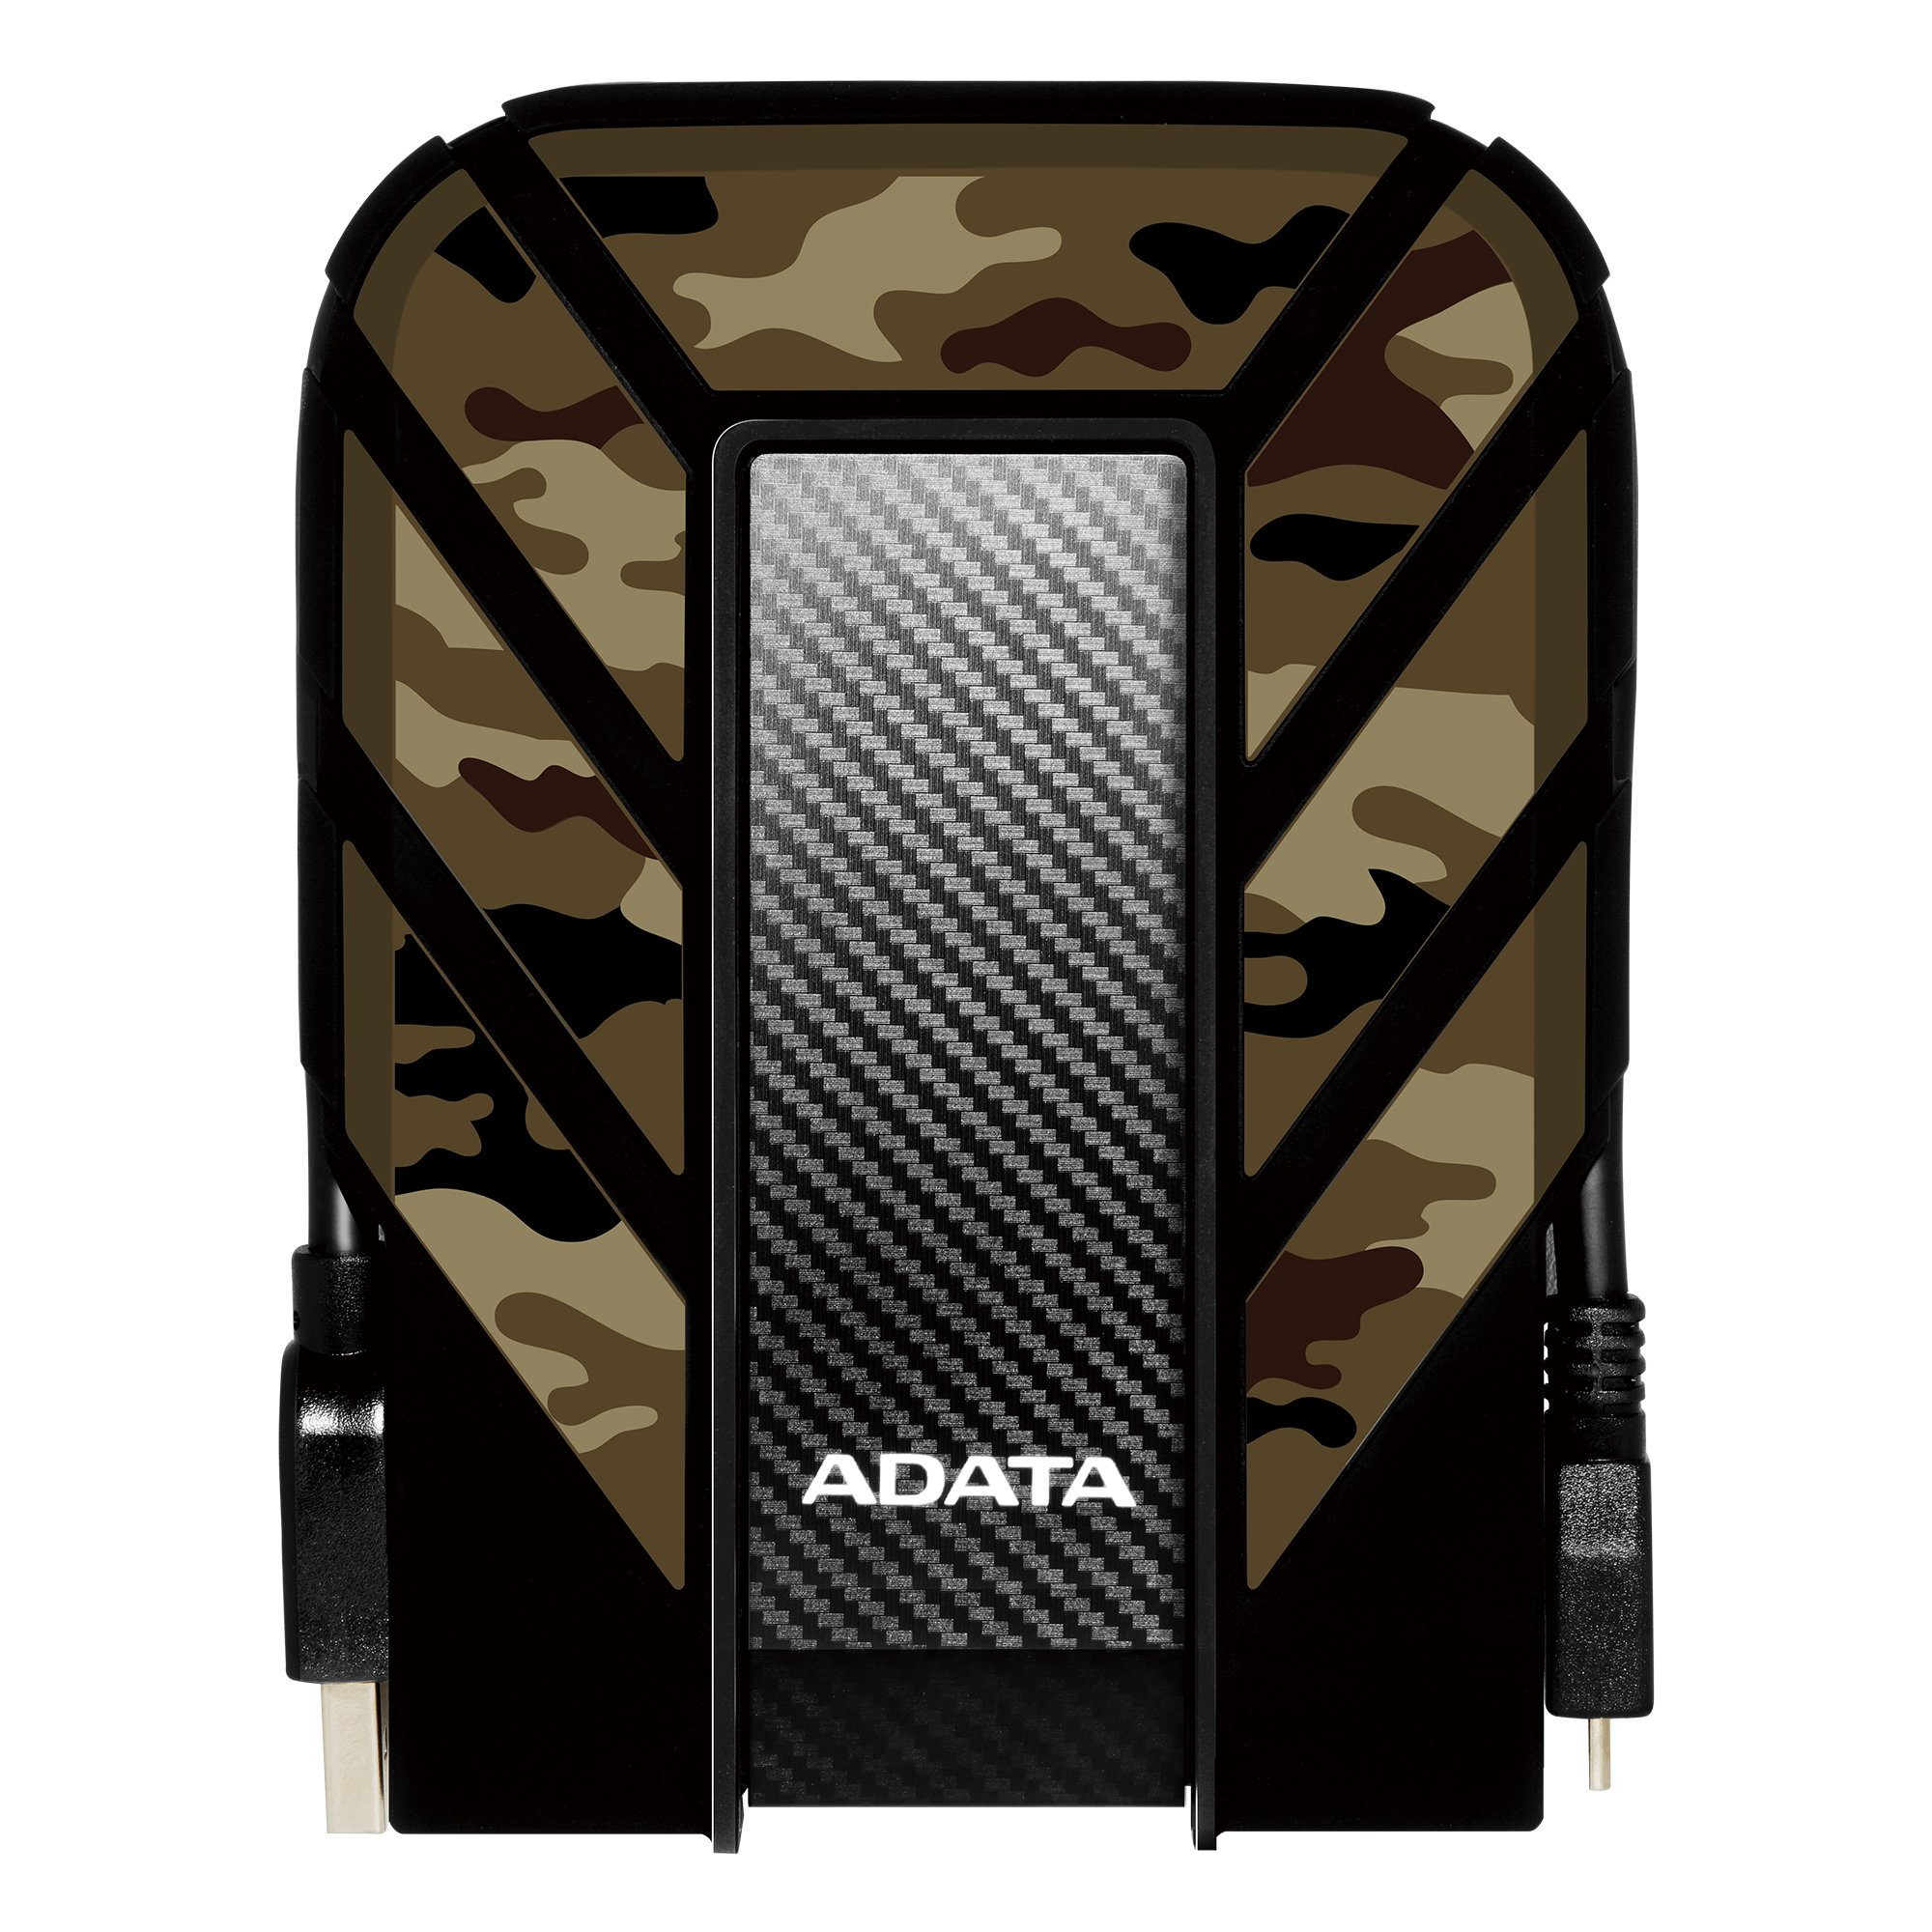 ADATA HD710M Pro 1TB USB 3.2 Rugged Waterproof/Dustproof/Shockproof External Hard Drive AHD710MP-1TU31-CC (Camouflage)